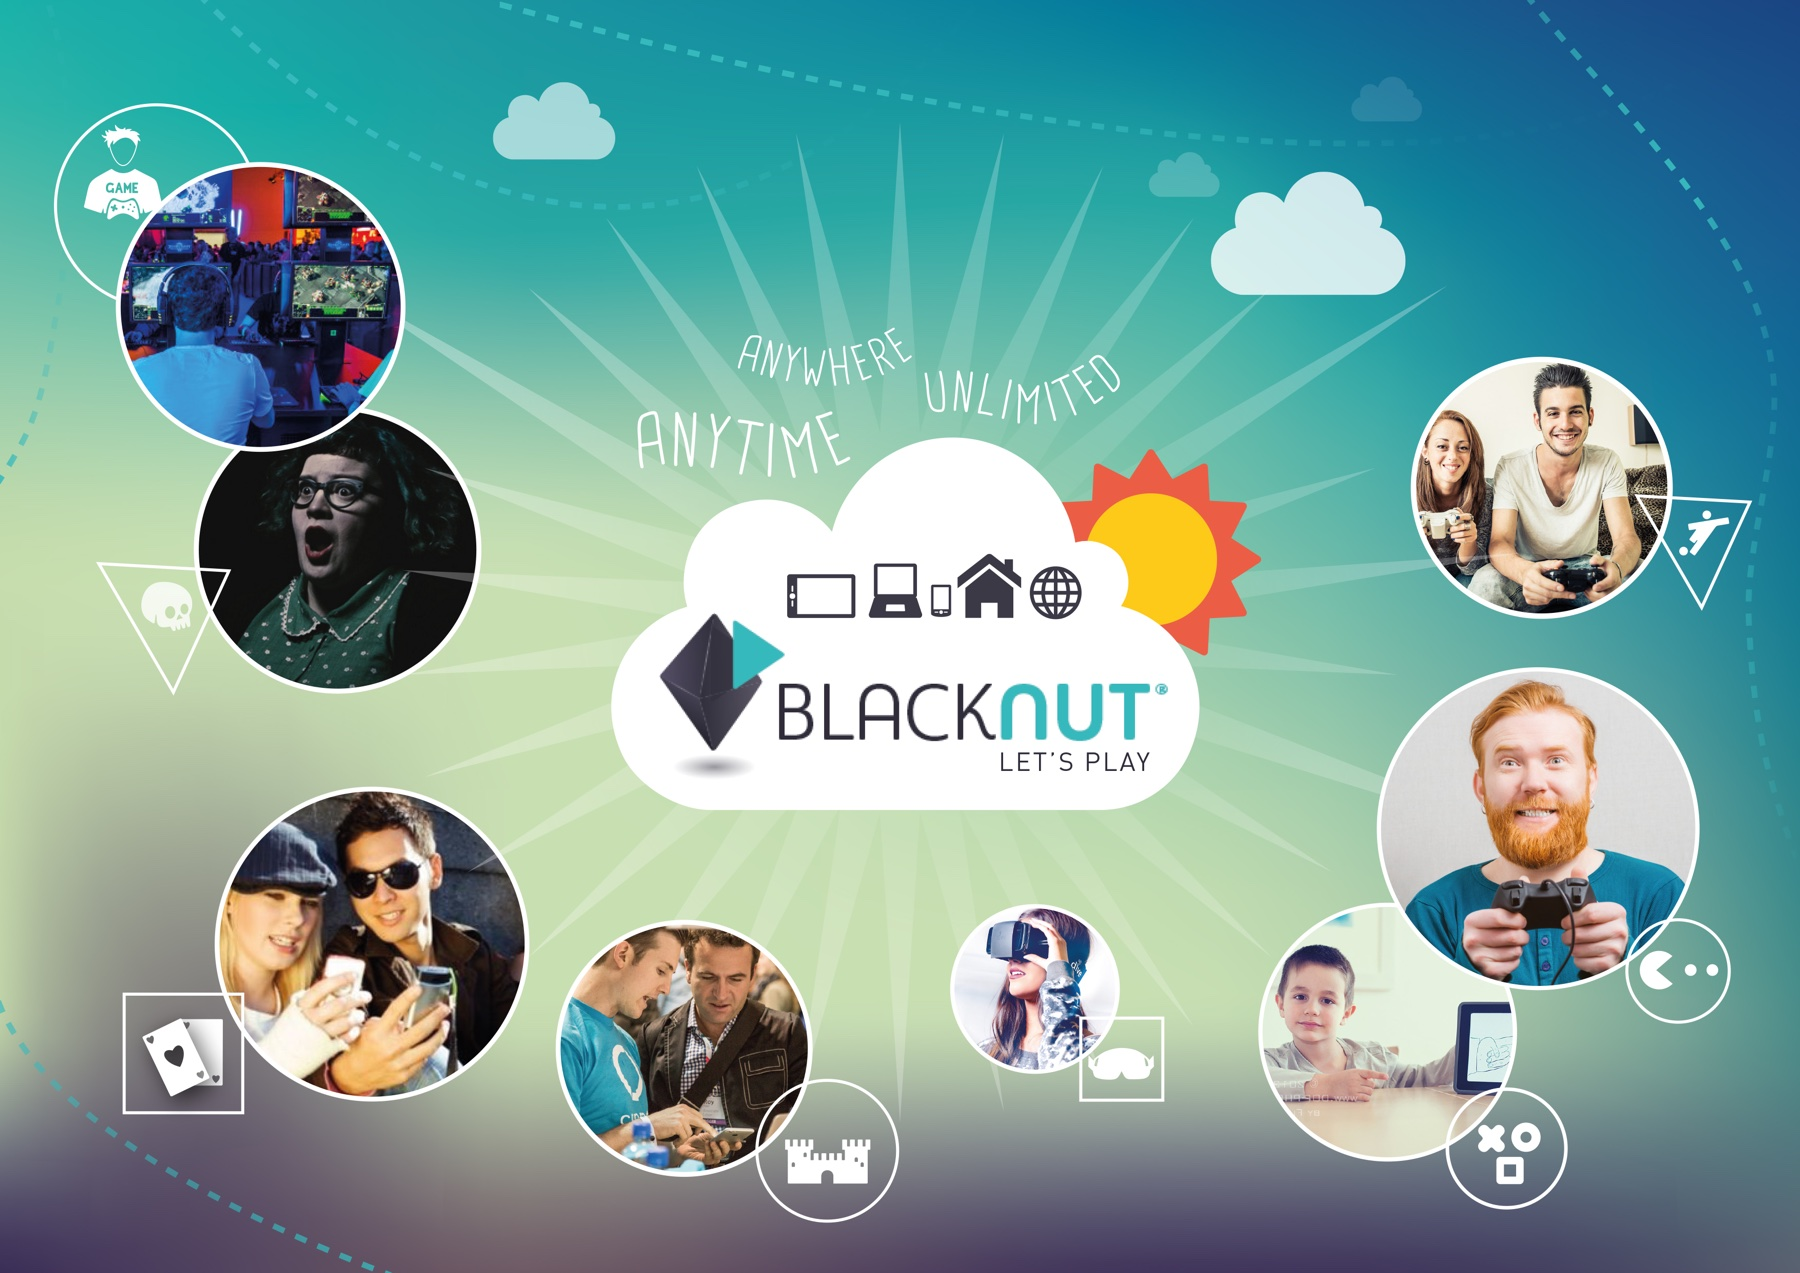 BlackNut et Le cloud gaming, une révolution ?